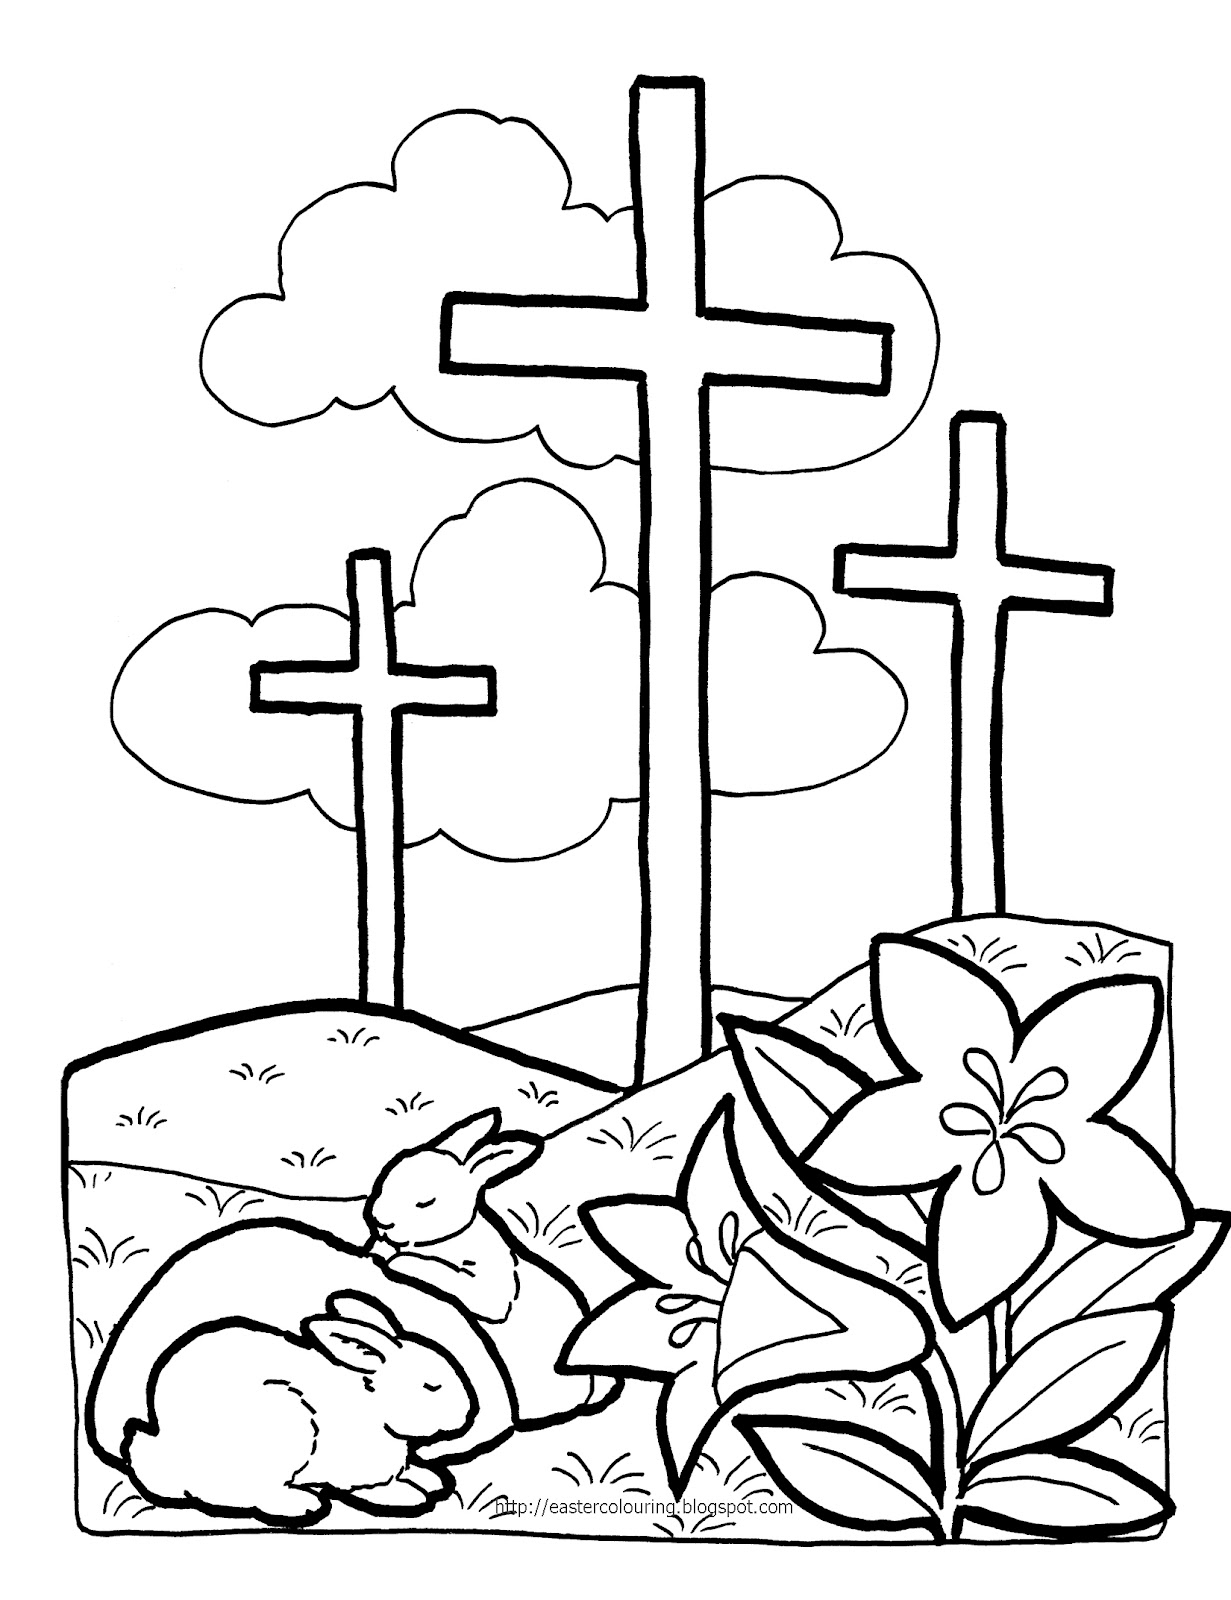 Jesus clipart for kids black and white free download best jesus 1231x1600 religious easter clip art black and white happy easter 2017 buycottarizona Image collections